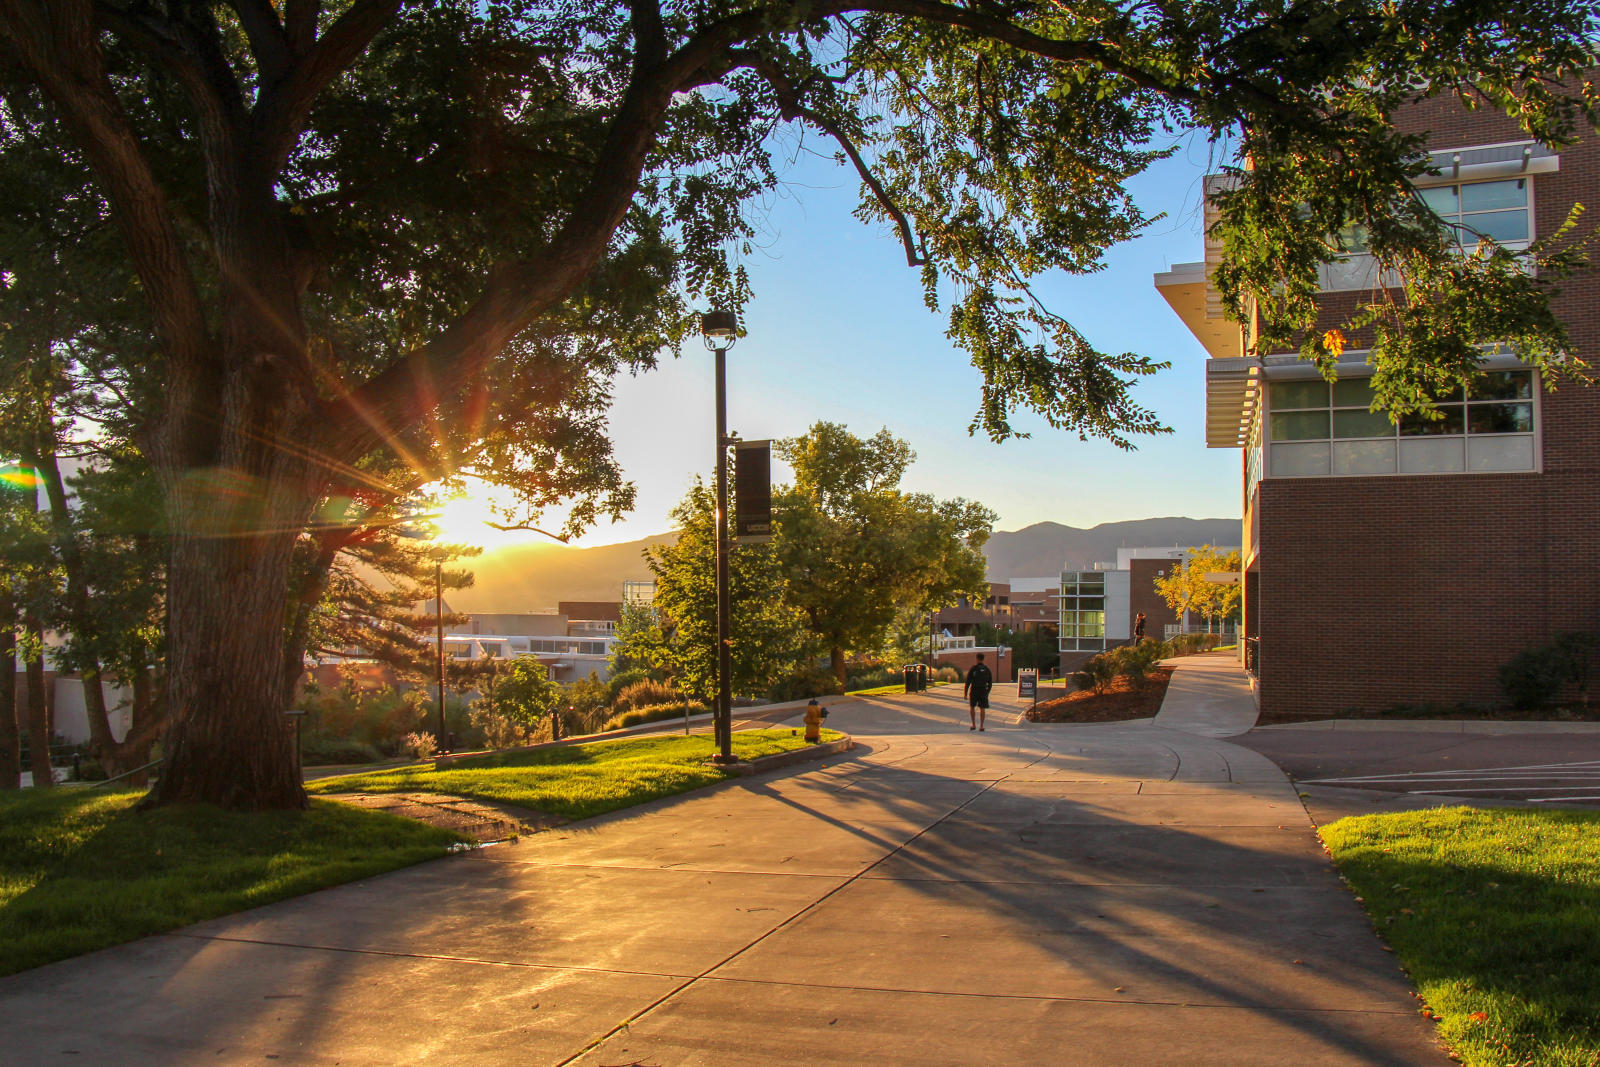 Sunsetting behind mountains near Dwire Hall